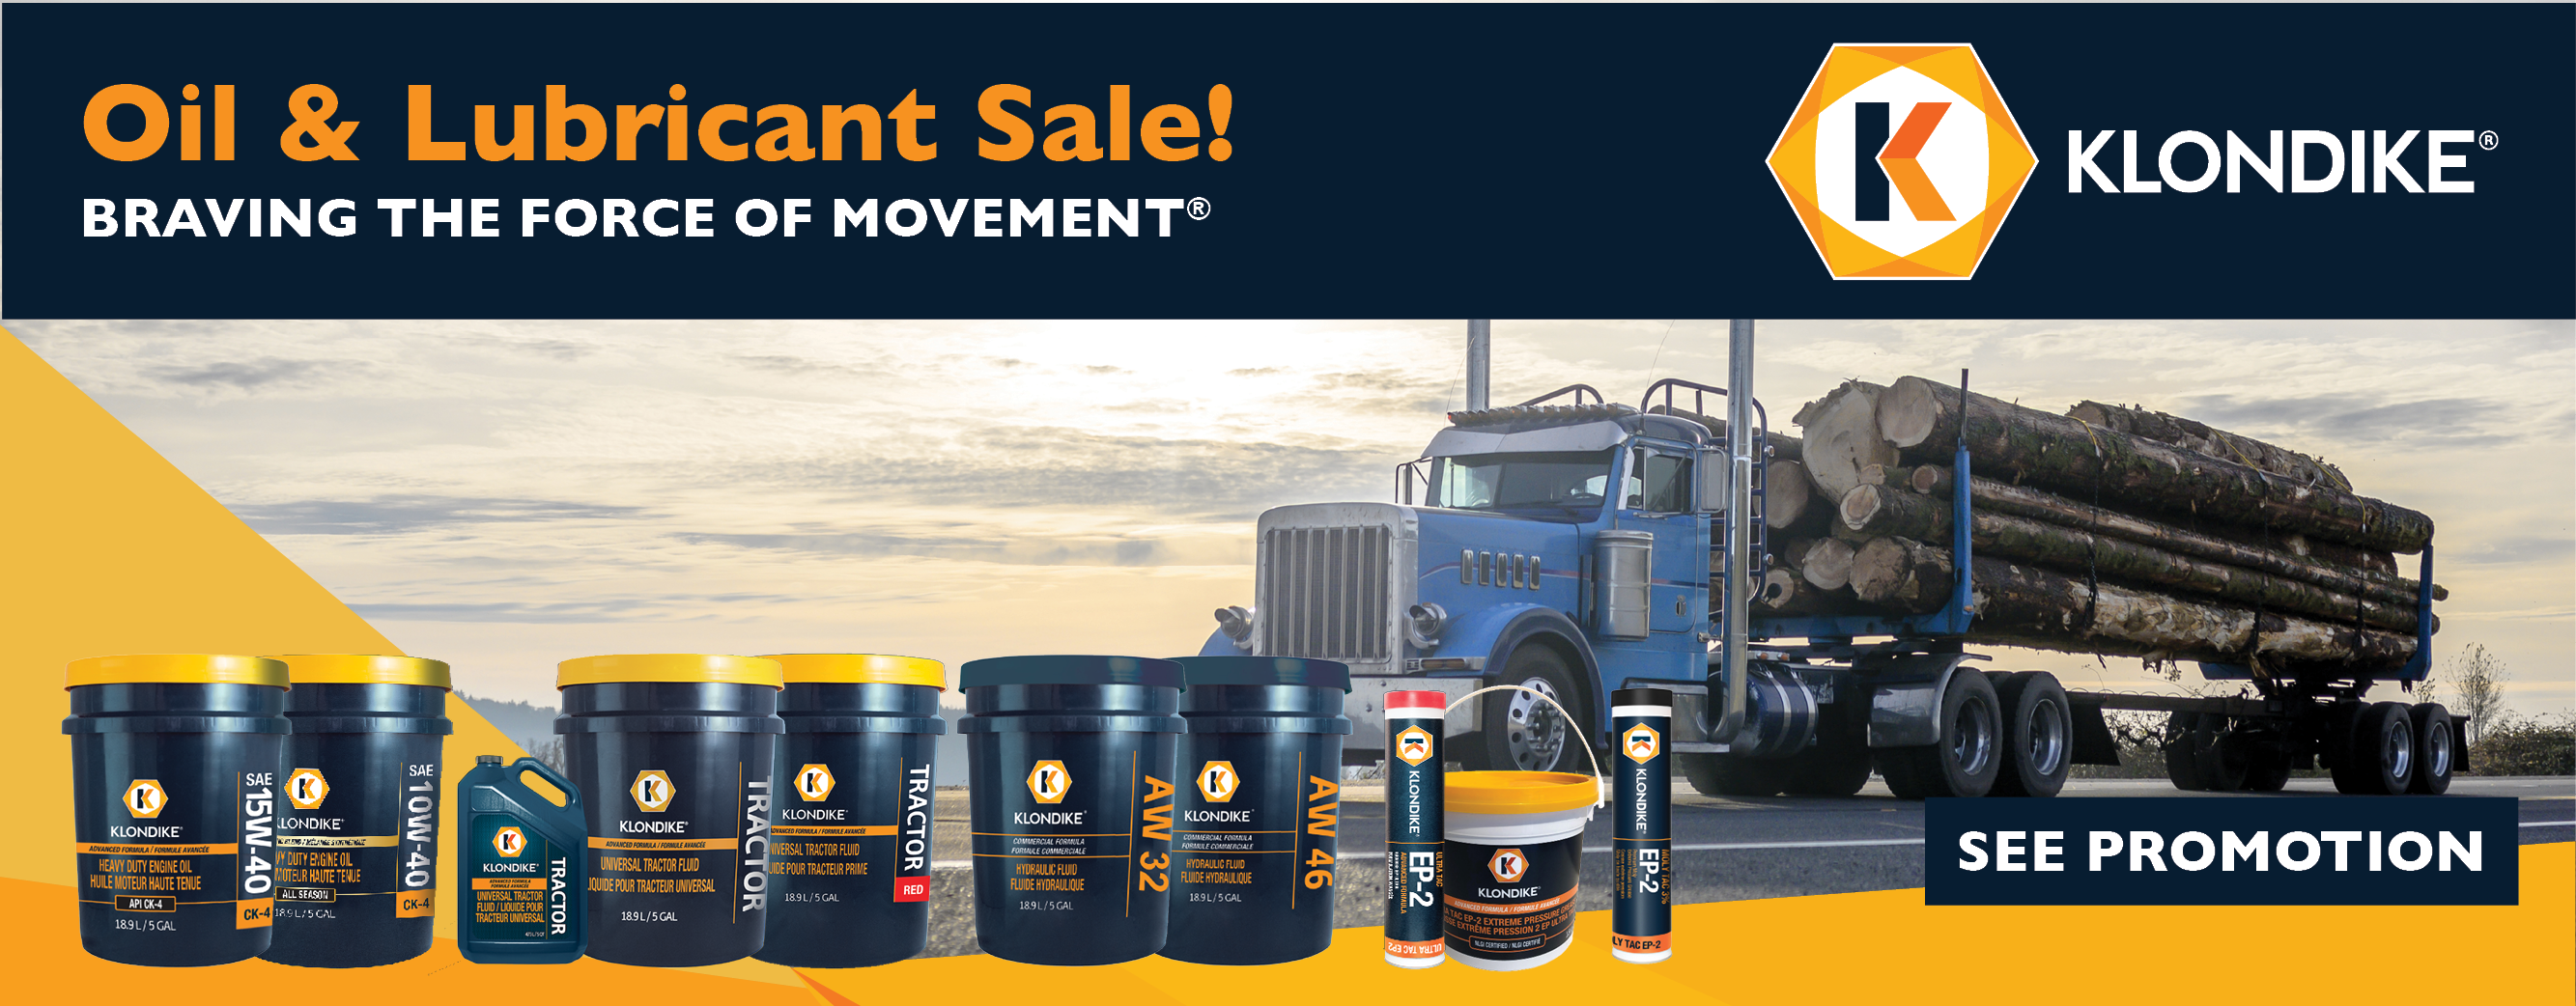 Pat's Klondike Oil & Lubricant Sale - Sept 2020